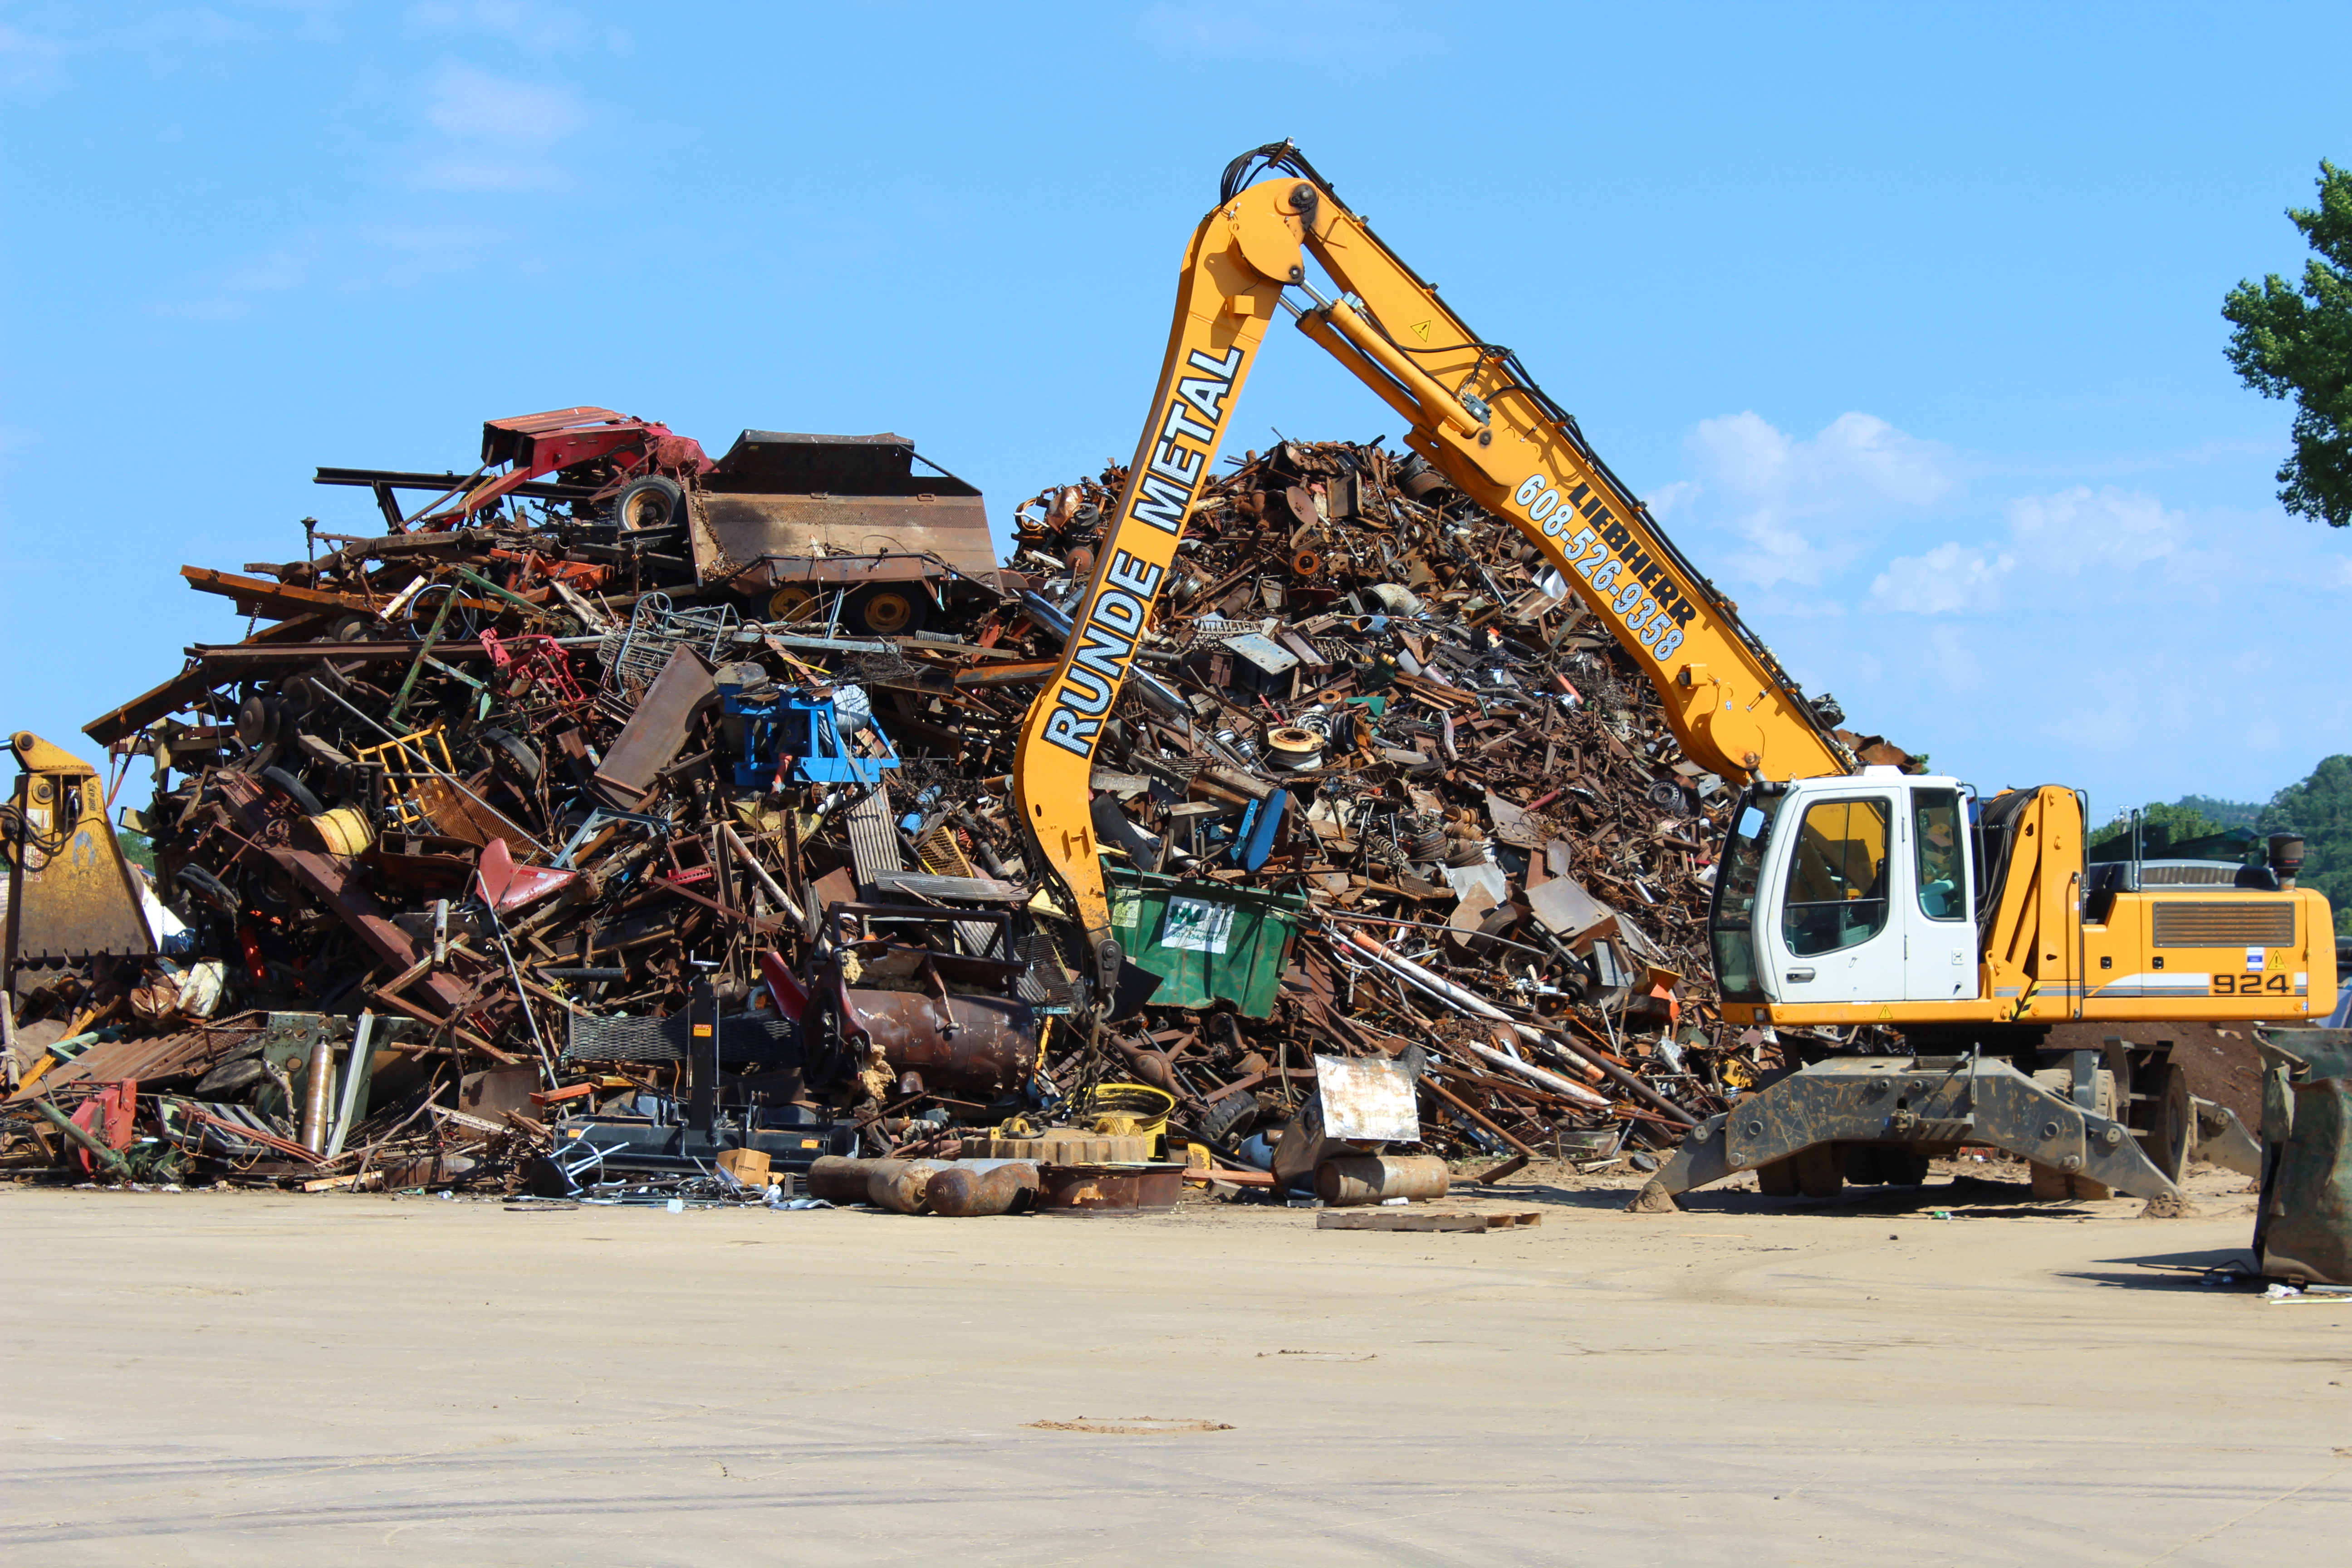 metals recycling This article provides an overview of metal recycling, types of metals recycled, the metal recycling process, business opportunities and trade groups.